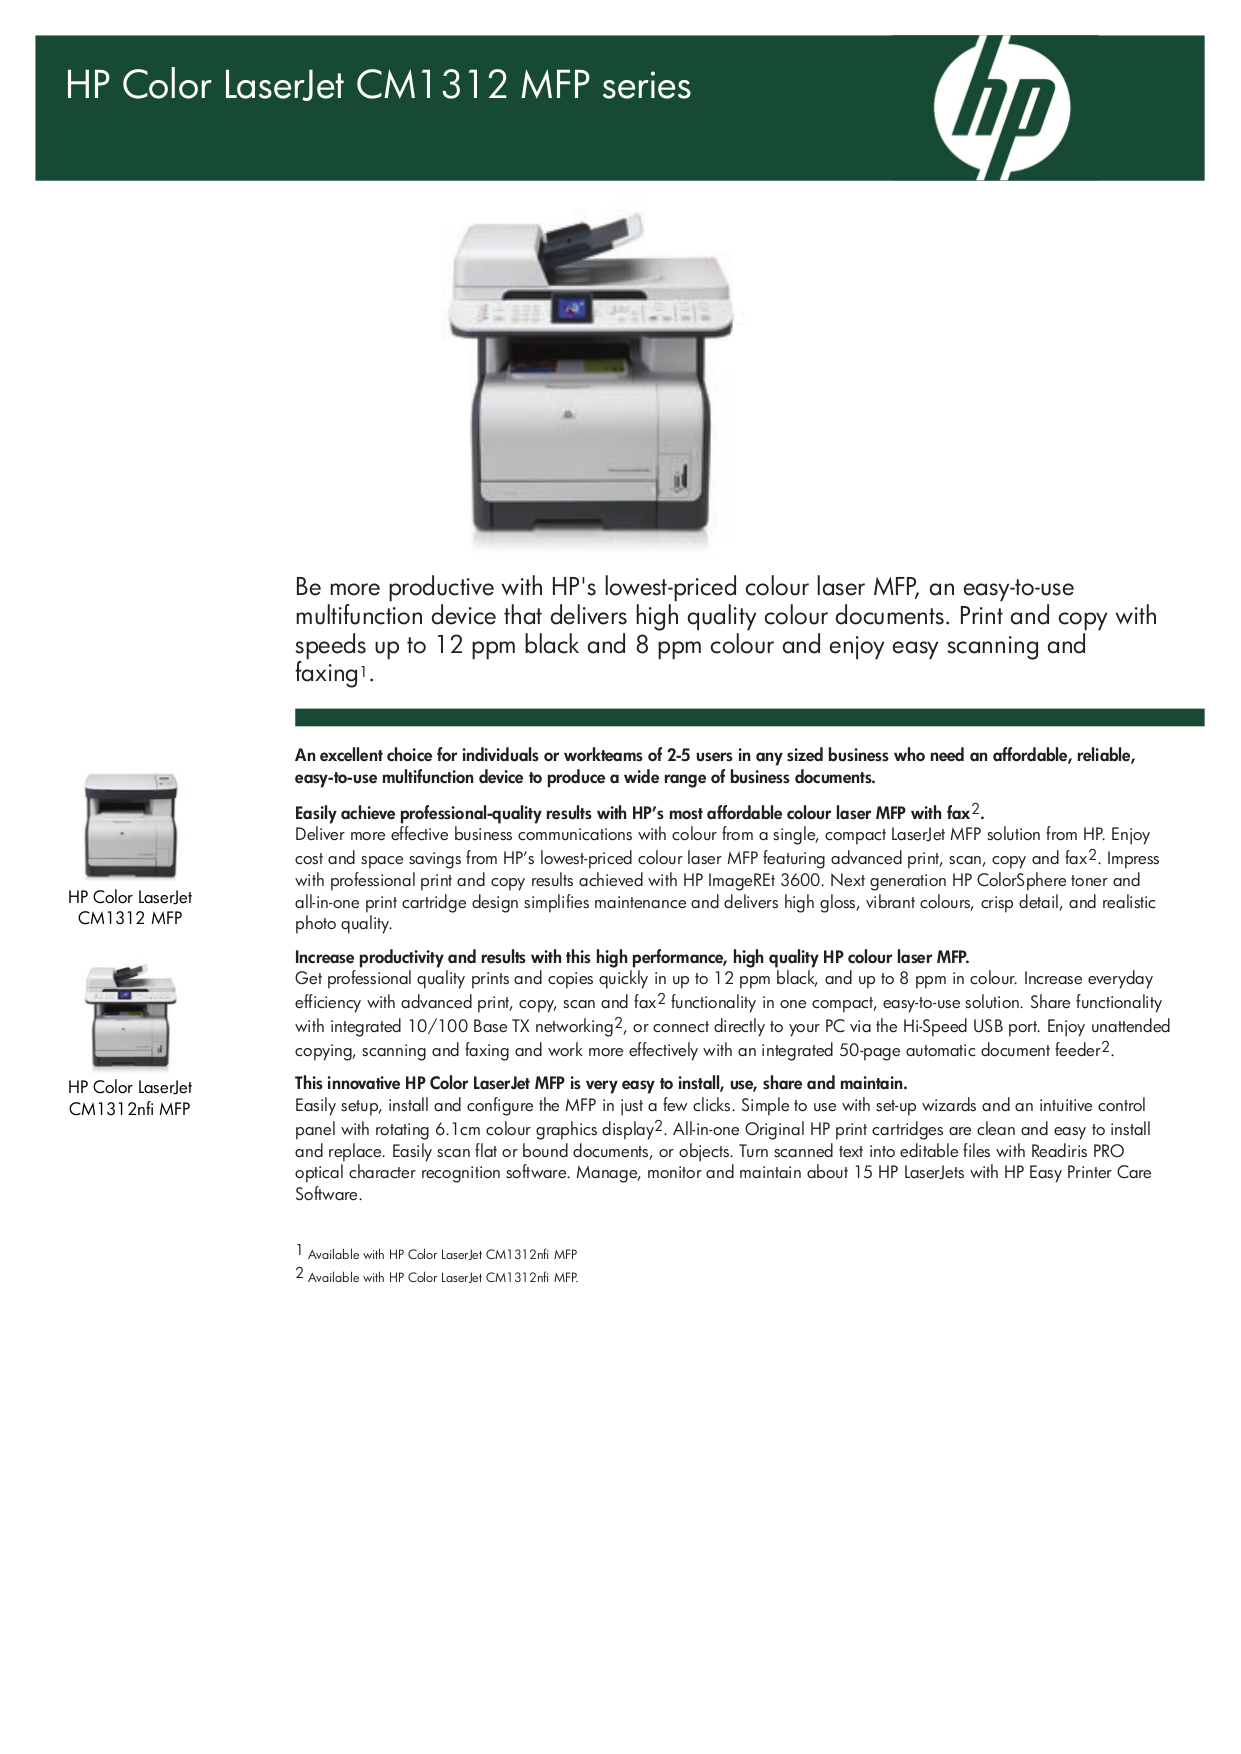 pdf for HP Multifunction Printer Laserjet,Color Laserjet CM1312 manual